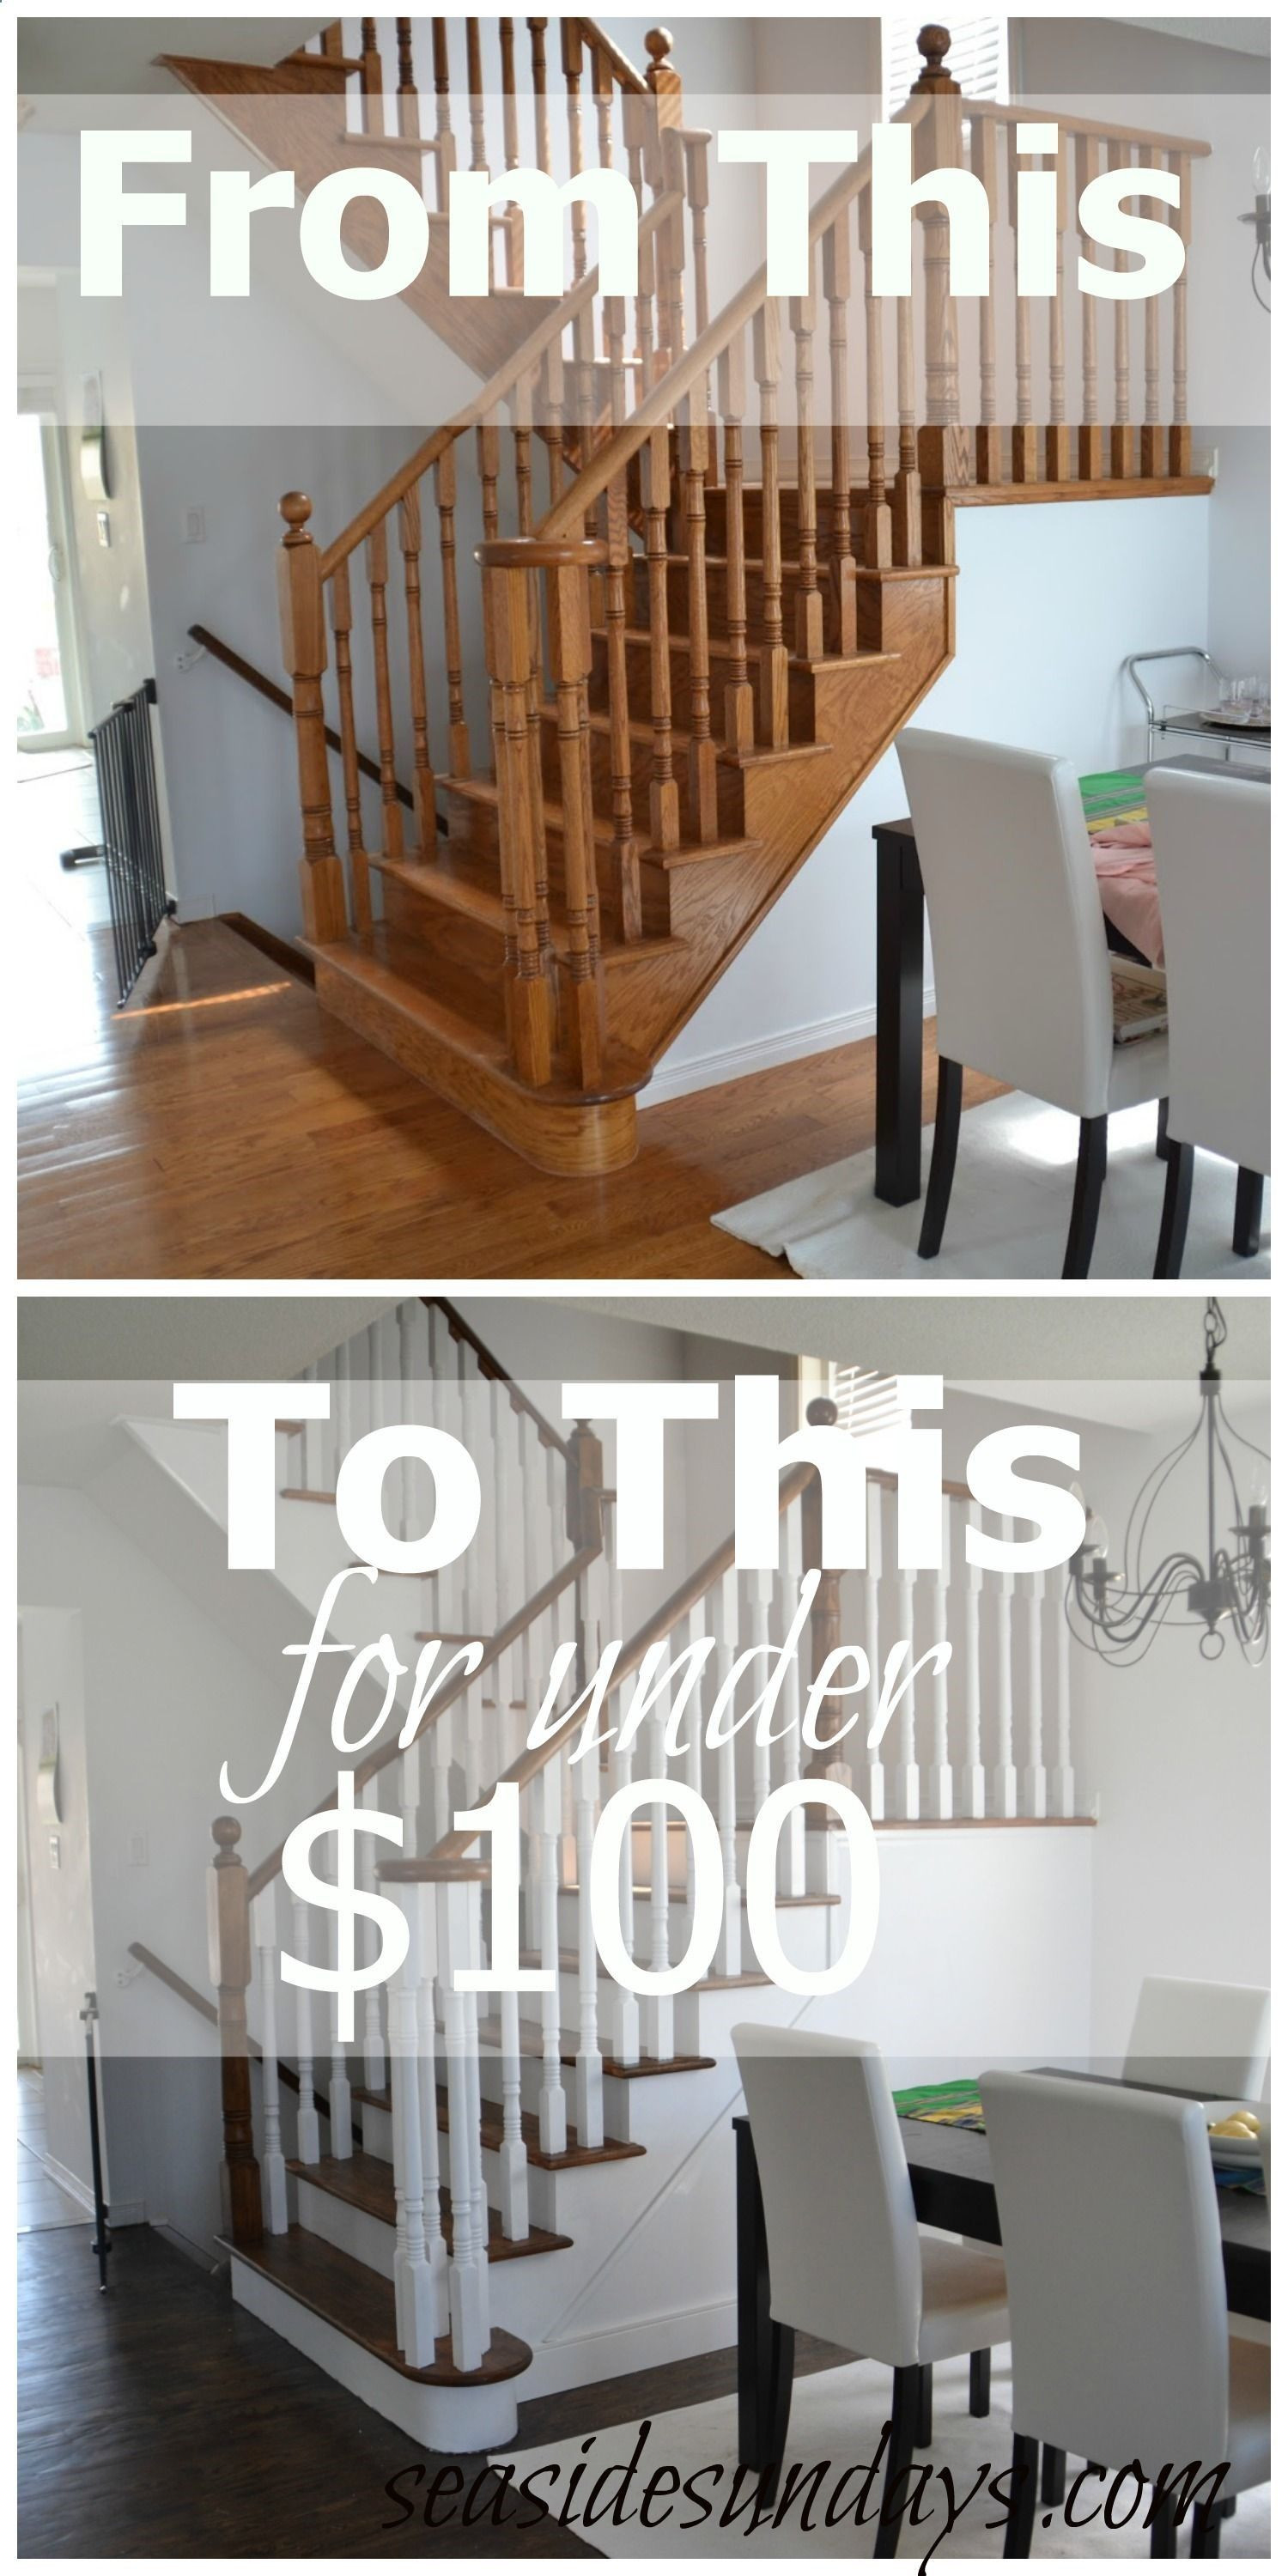 how much does it cost to refinish hardwood floors yourself of wood profit woodworking how to refinish hardwood floors diy intended for wood profit woodworking how to refinish hardwood floors diy refinish and stain stairs